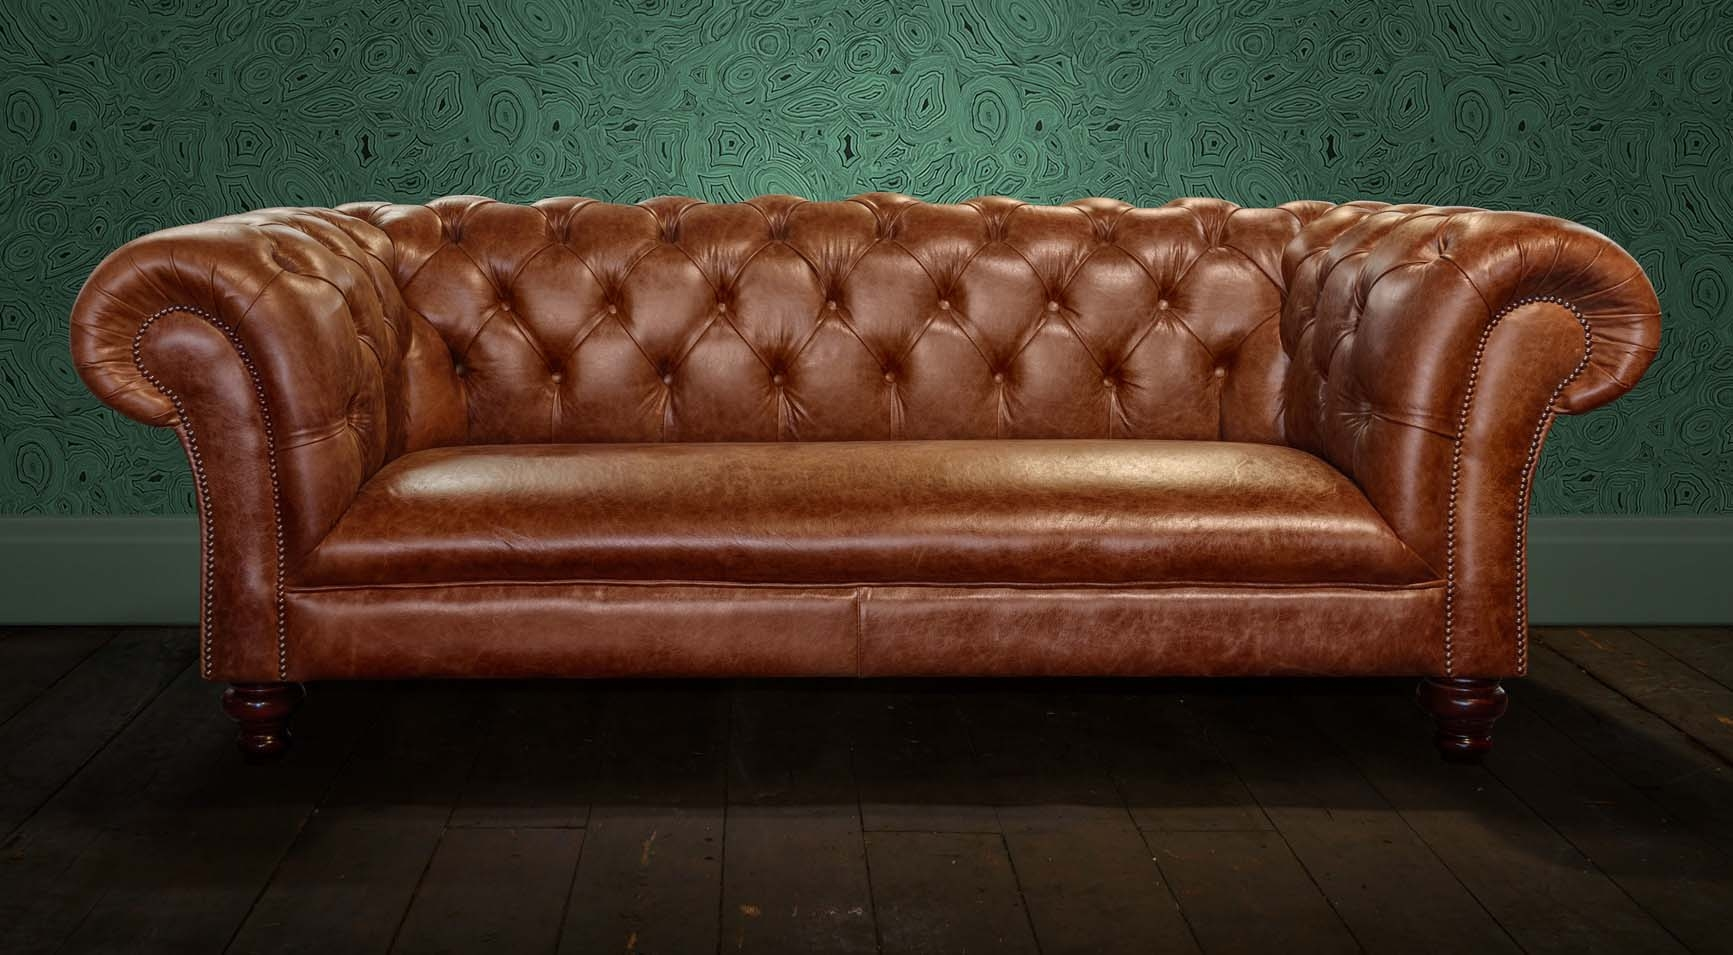 Chesterfields Of England The Original Chesterfield Company Pertaining To Chesterfield Furniture (Image 8 of 15)